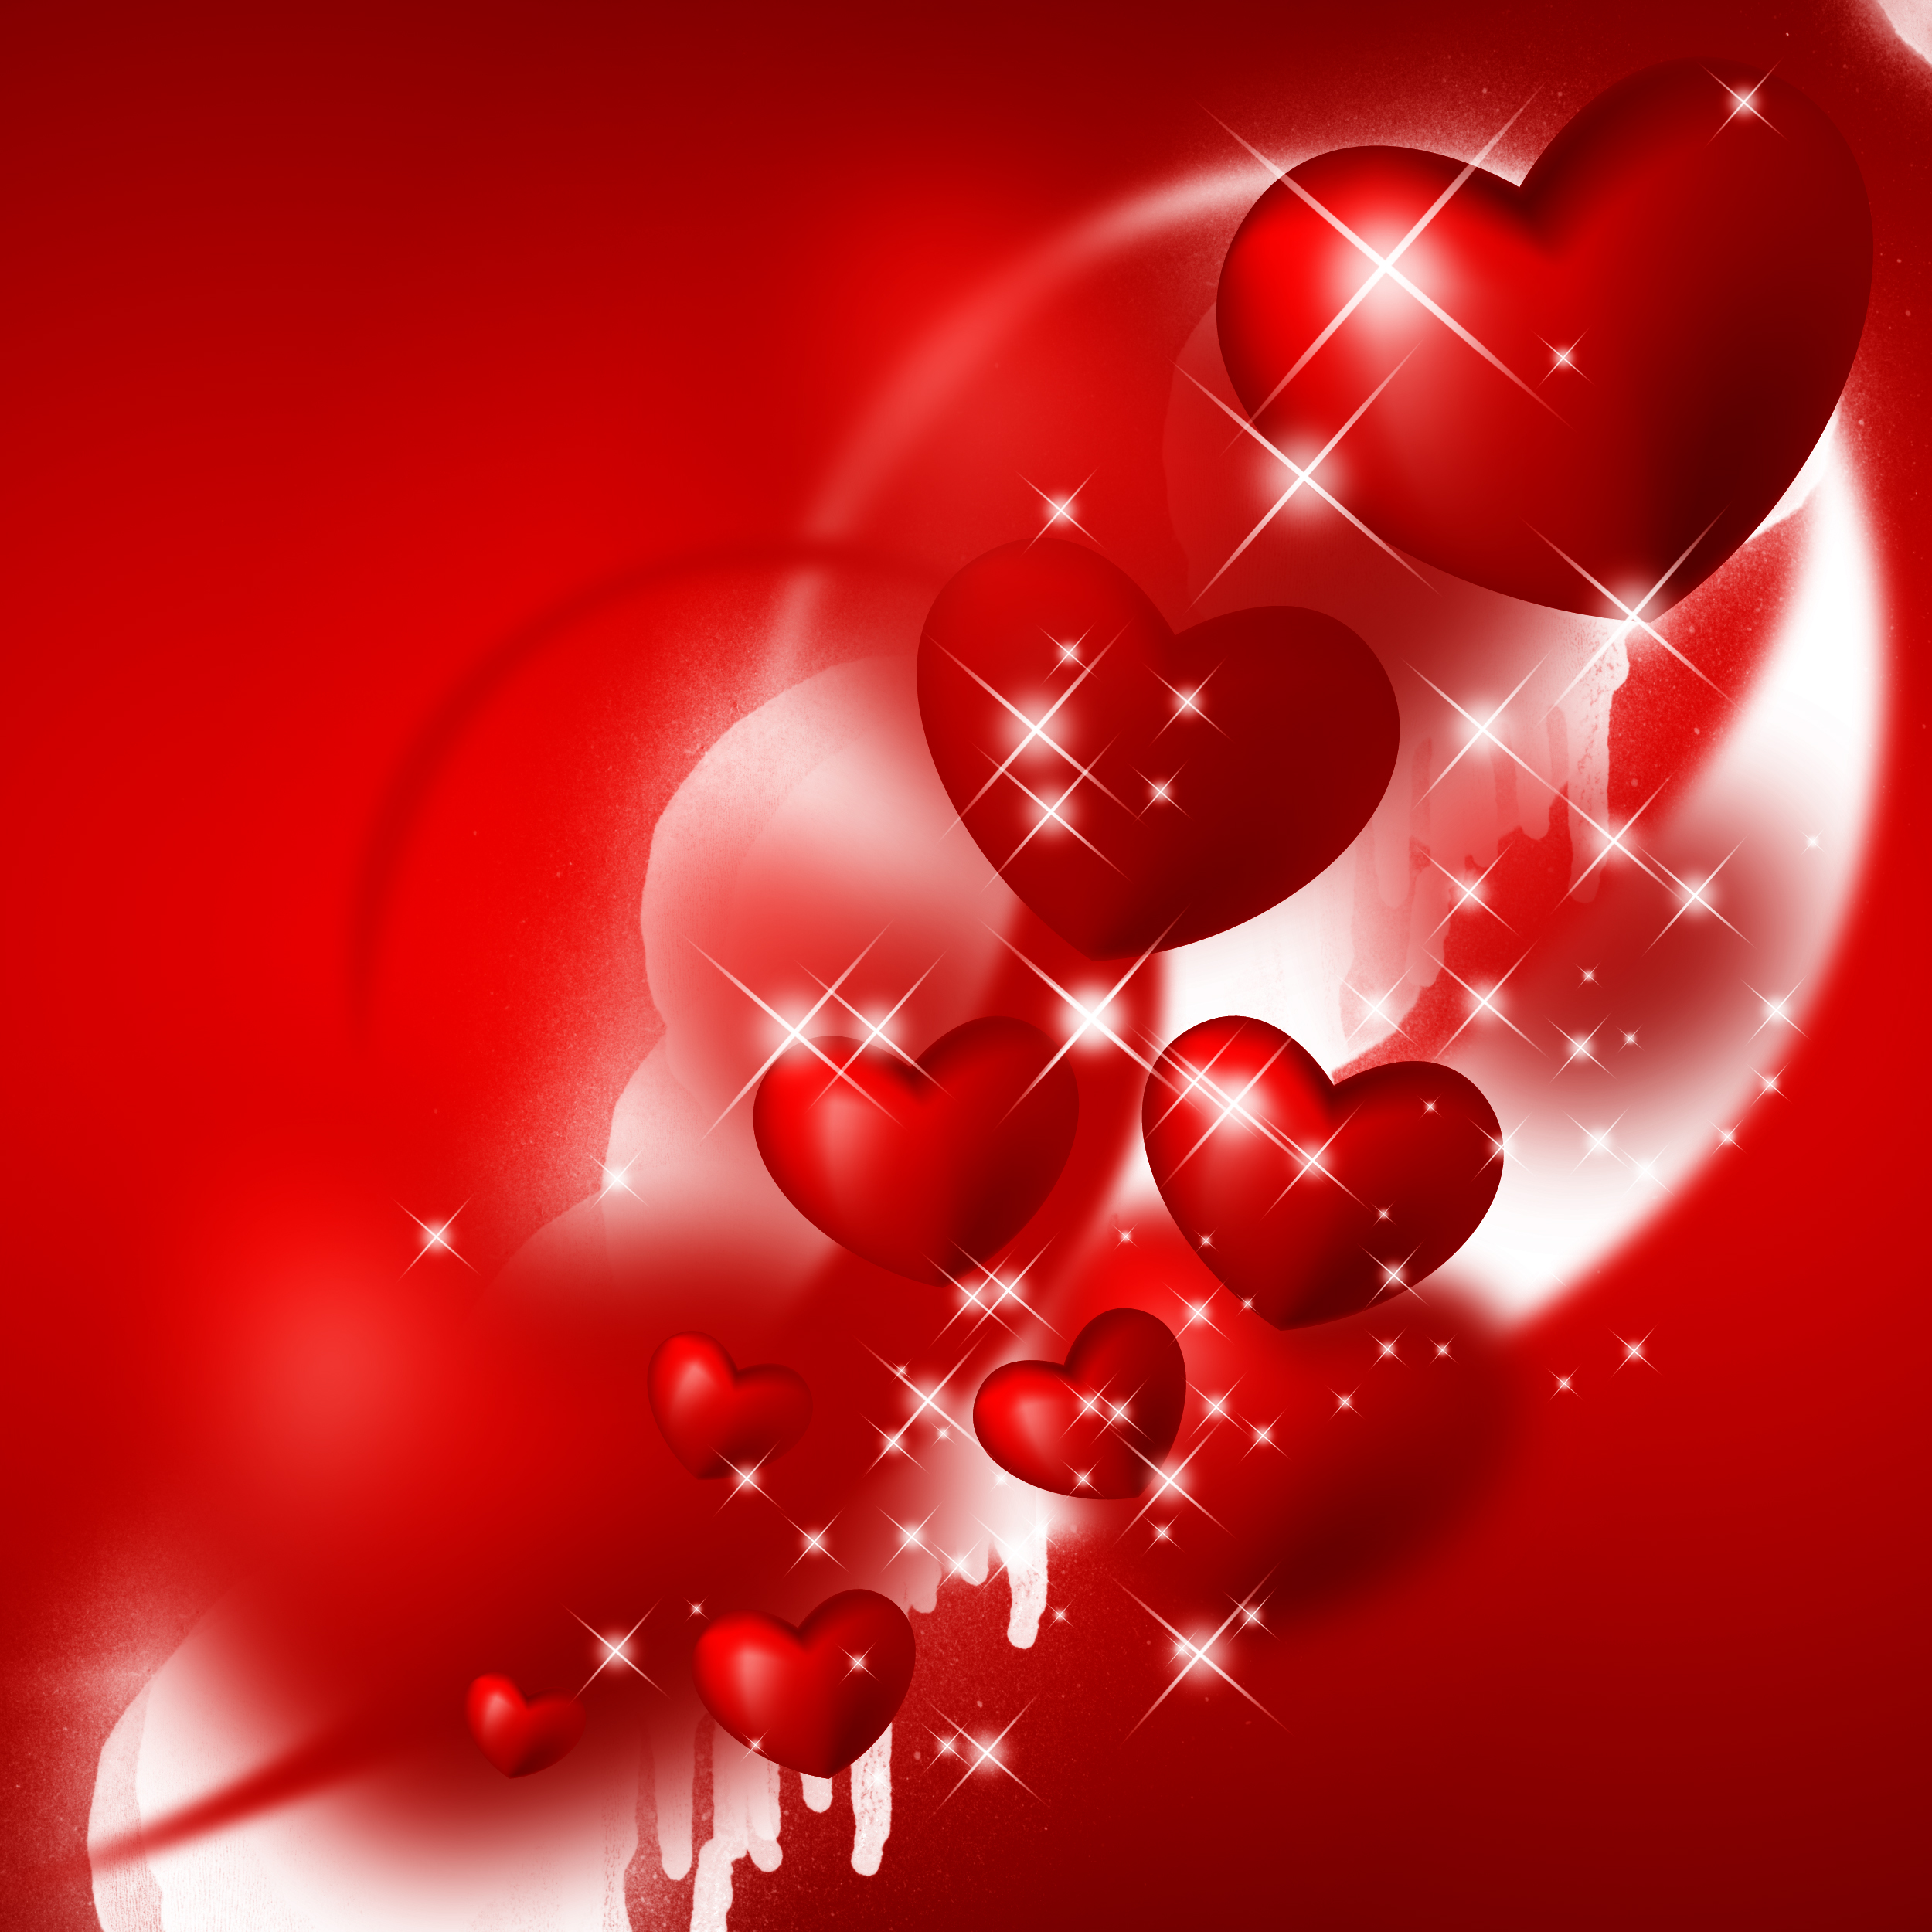 Valentine Backgrounds   Downloads and Add ons for Photoshop 2500x2500